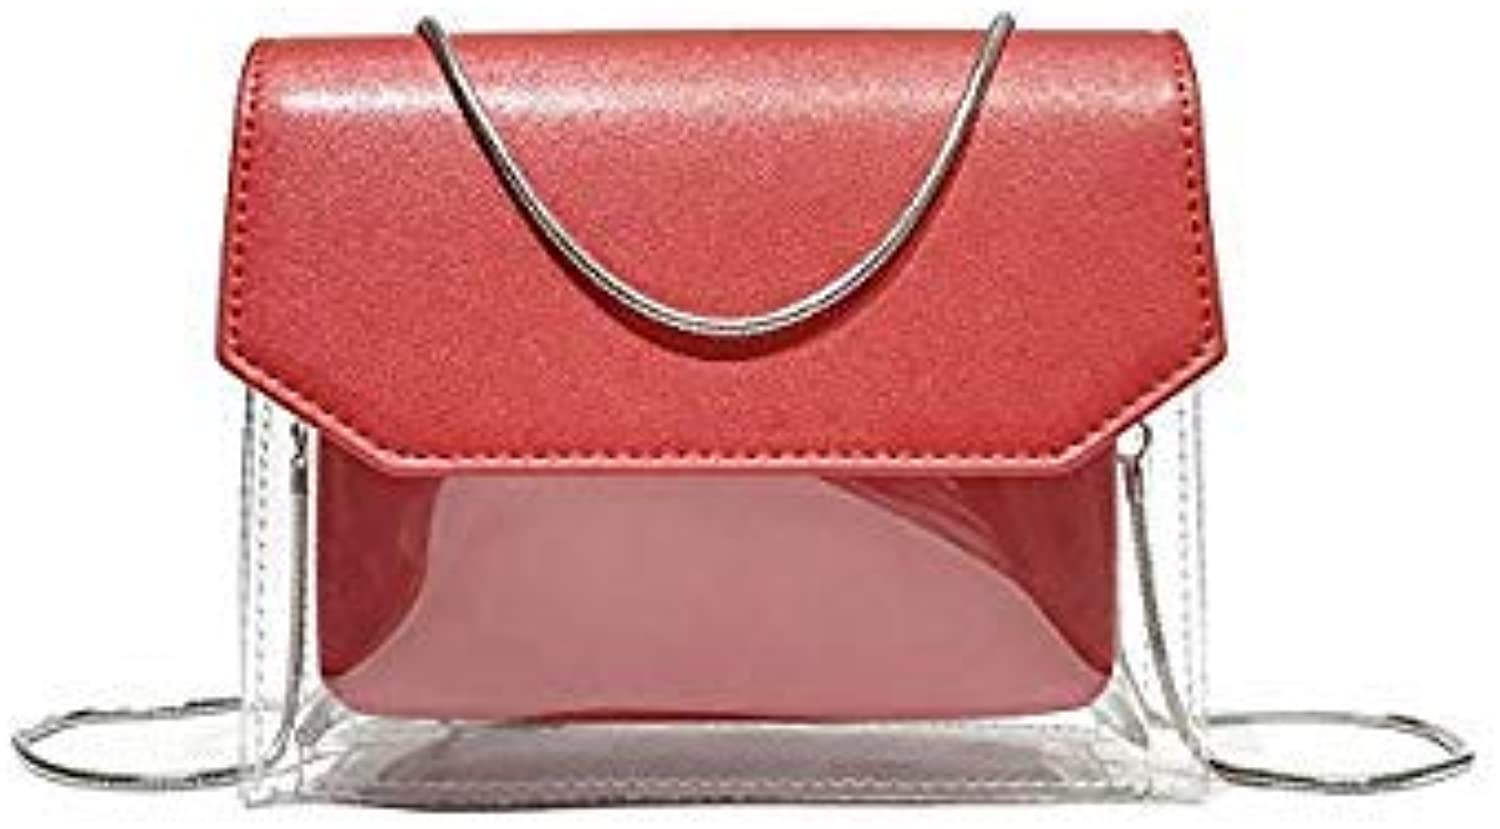 Bloomerang 2018 New Jelly Bag Handbag Fashion Ladies Shoulder Bag Korean Version of The Transparent Diagonal Cross Mother Package color Red